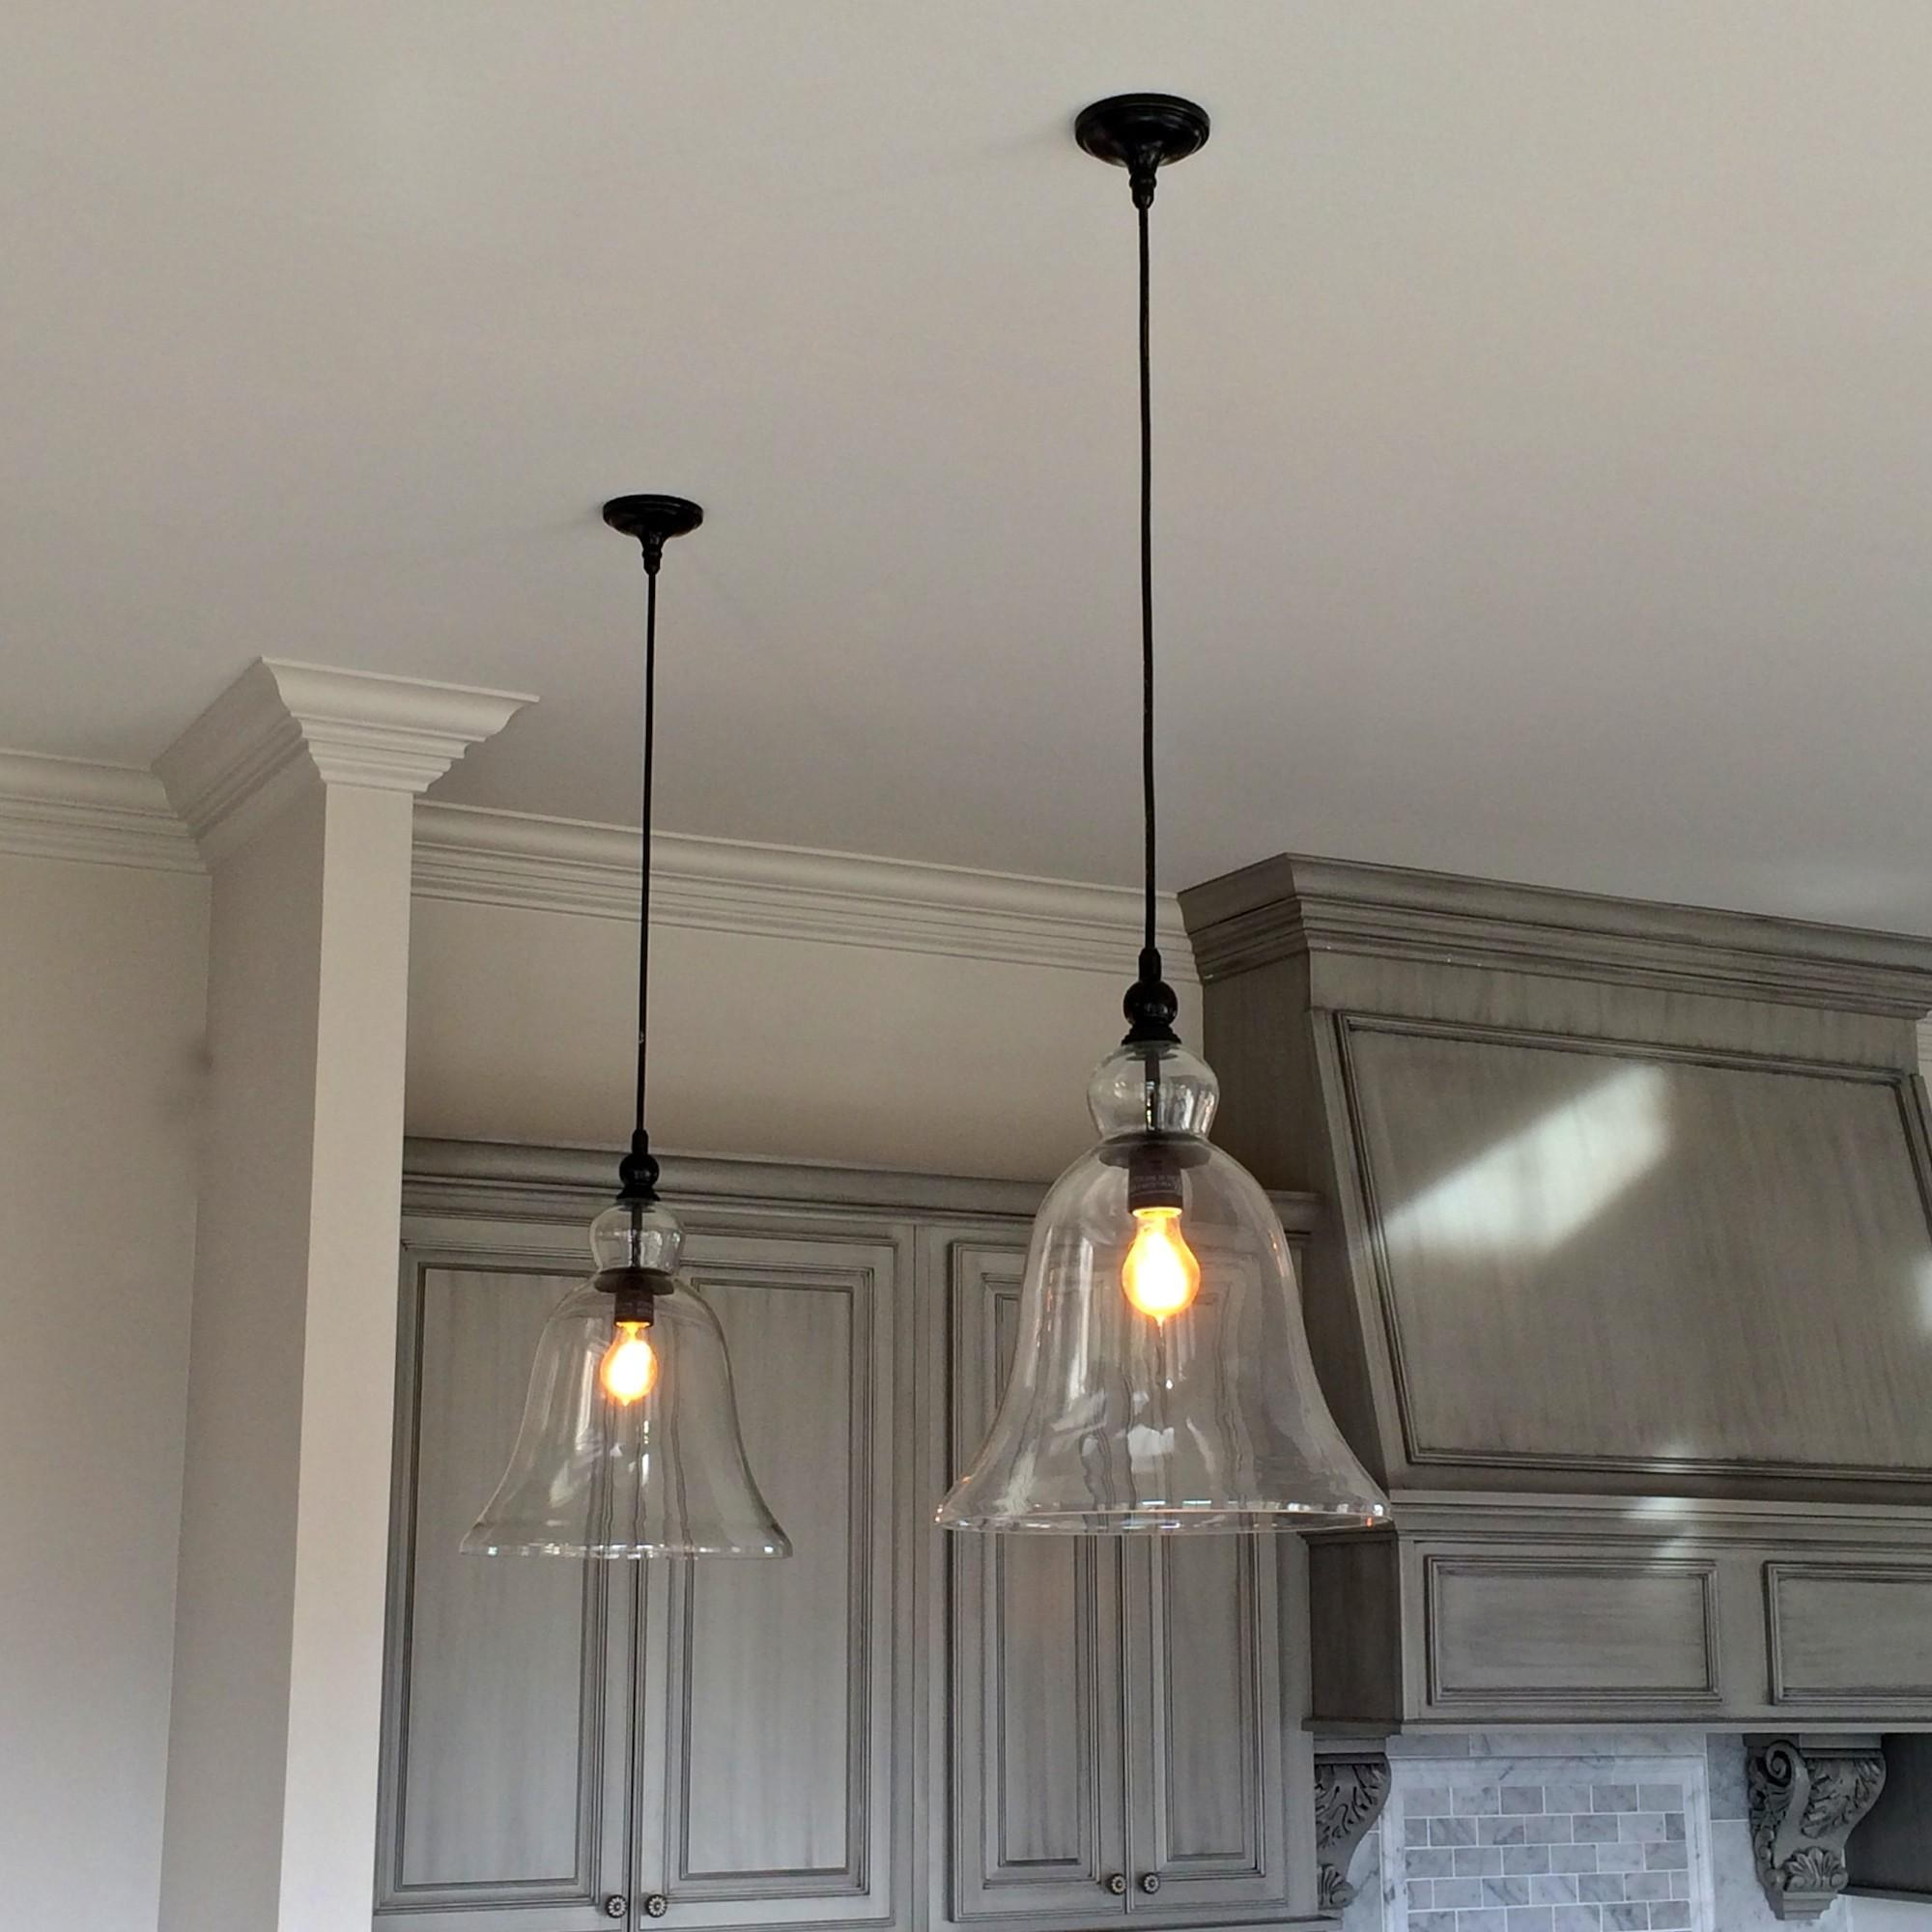 Perfect Design Your Own Pendant Light Home Depot